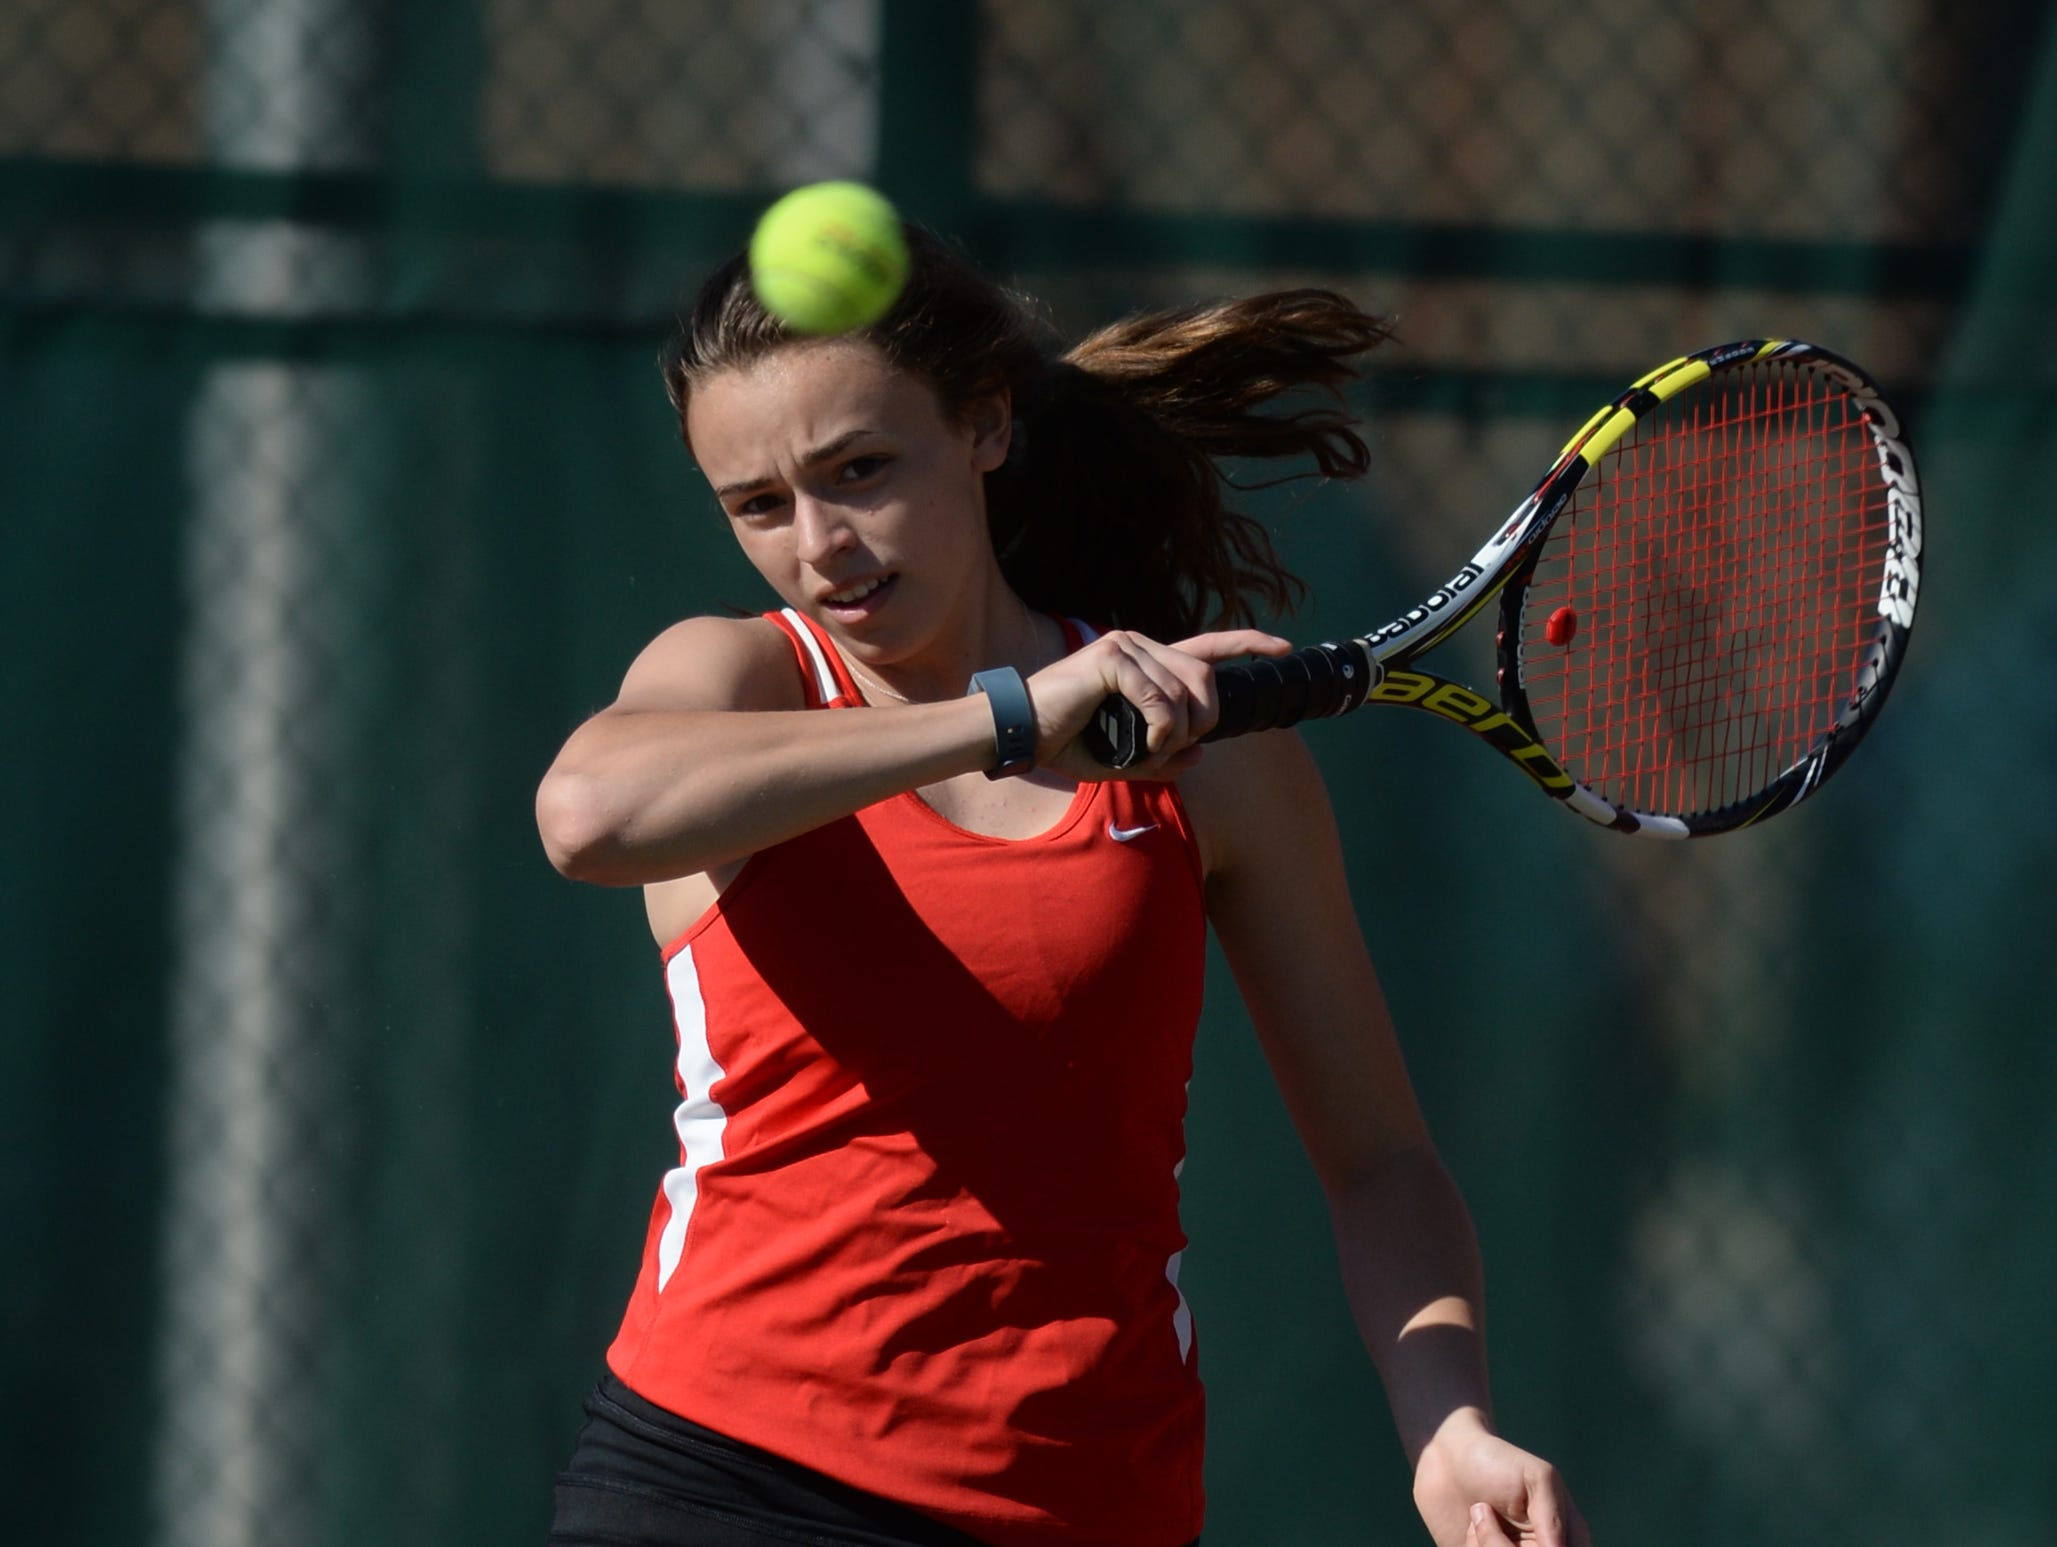 Richmond's Cami Jones returns the ball while playing No. 2 singles this season. The Red Devils drew a bye in the upcoming sectional tournament.